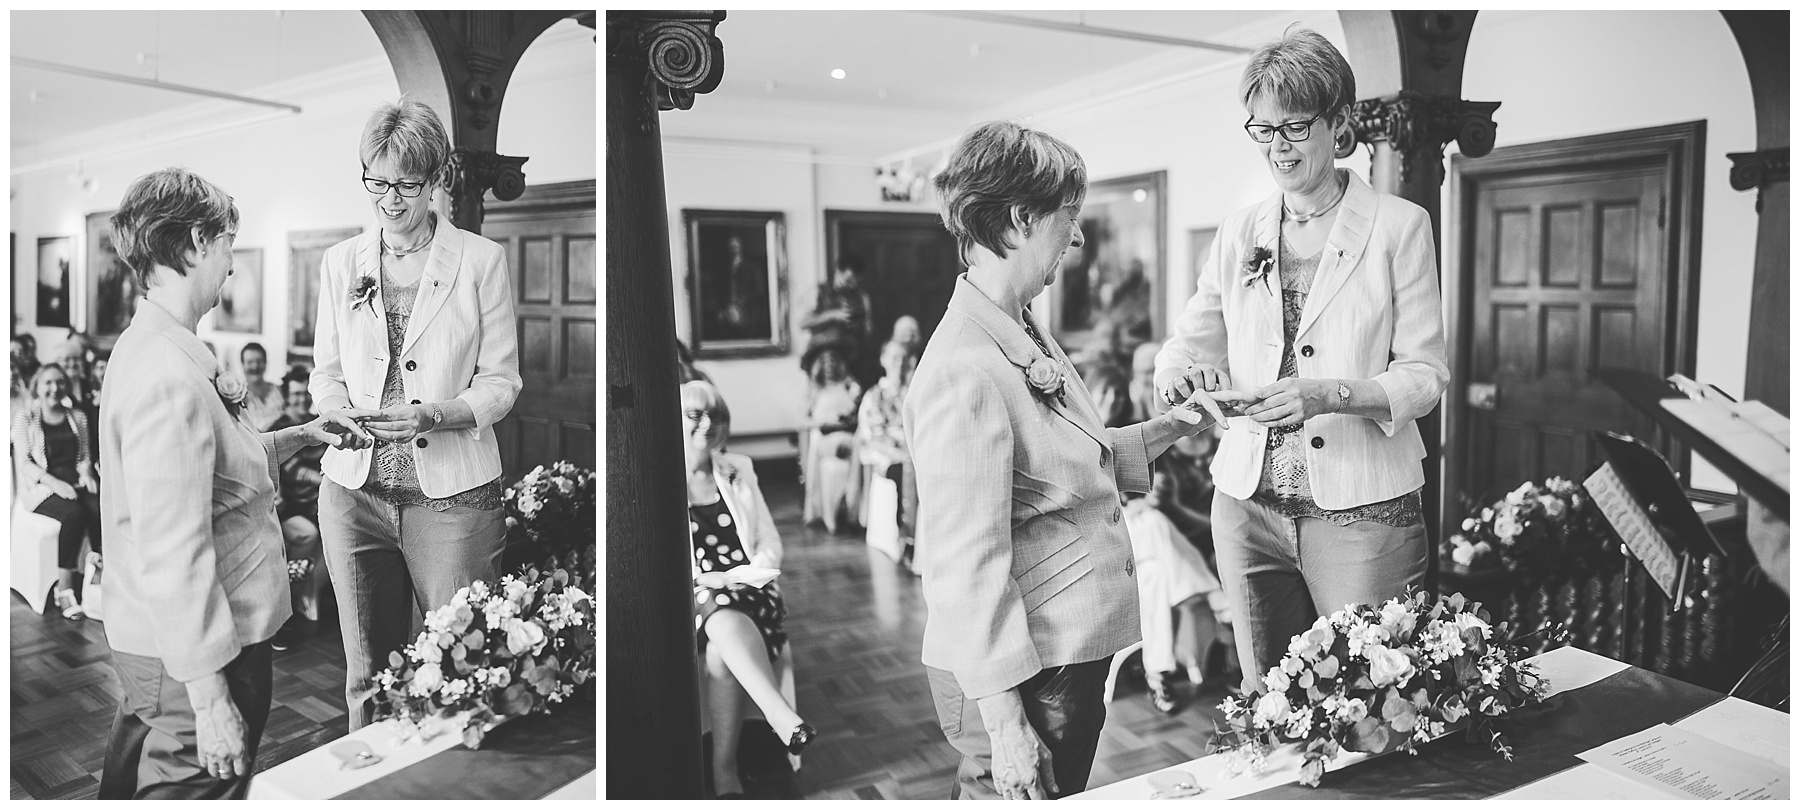 The special couple hand in hand - wedding ceremony at the haworth art gallery